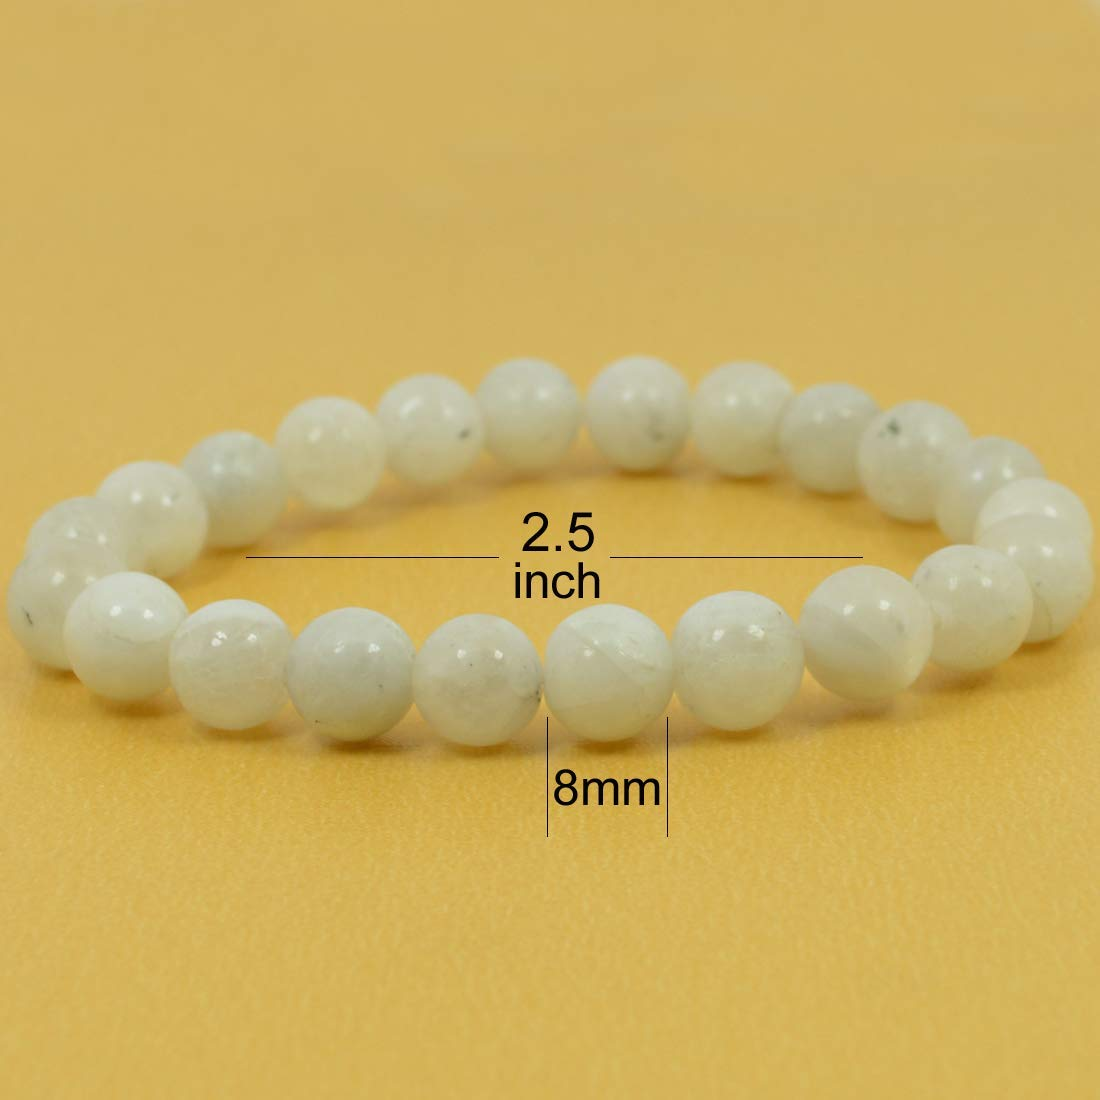 Reiki Crystal Products Natural Rainbow Moonstone Bracelet 8mm for Reiki Healing And Vastu Correction Protection Concentration Spirituality And Increasing Creativity